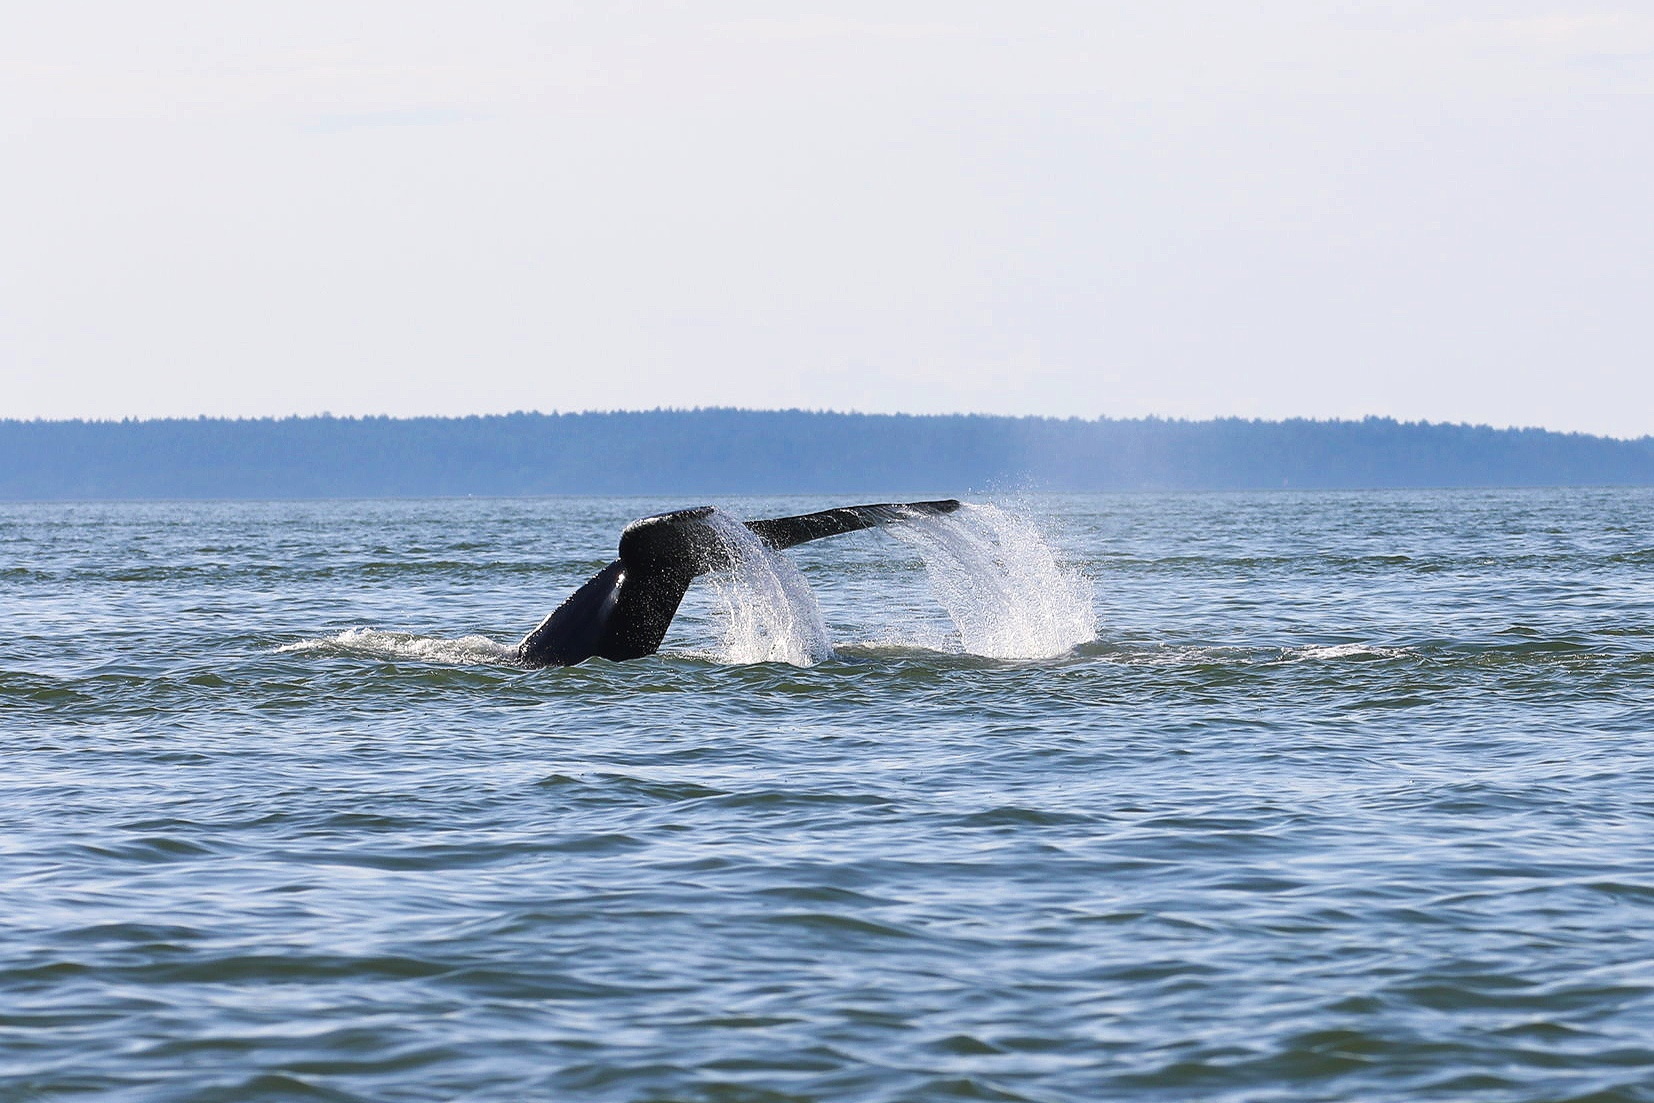 A humpback tail spraying water as the get ready for a deep dive. Photo by Rodrigo Menezes (3.30)